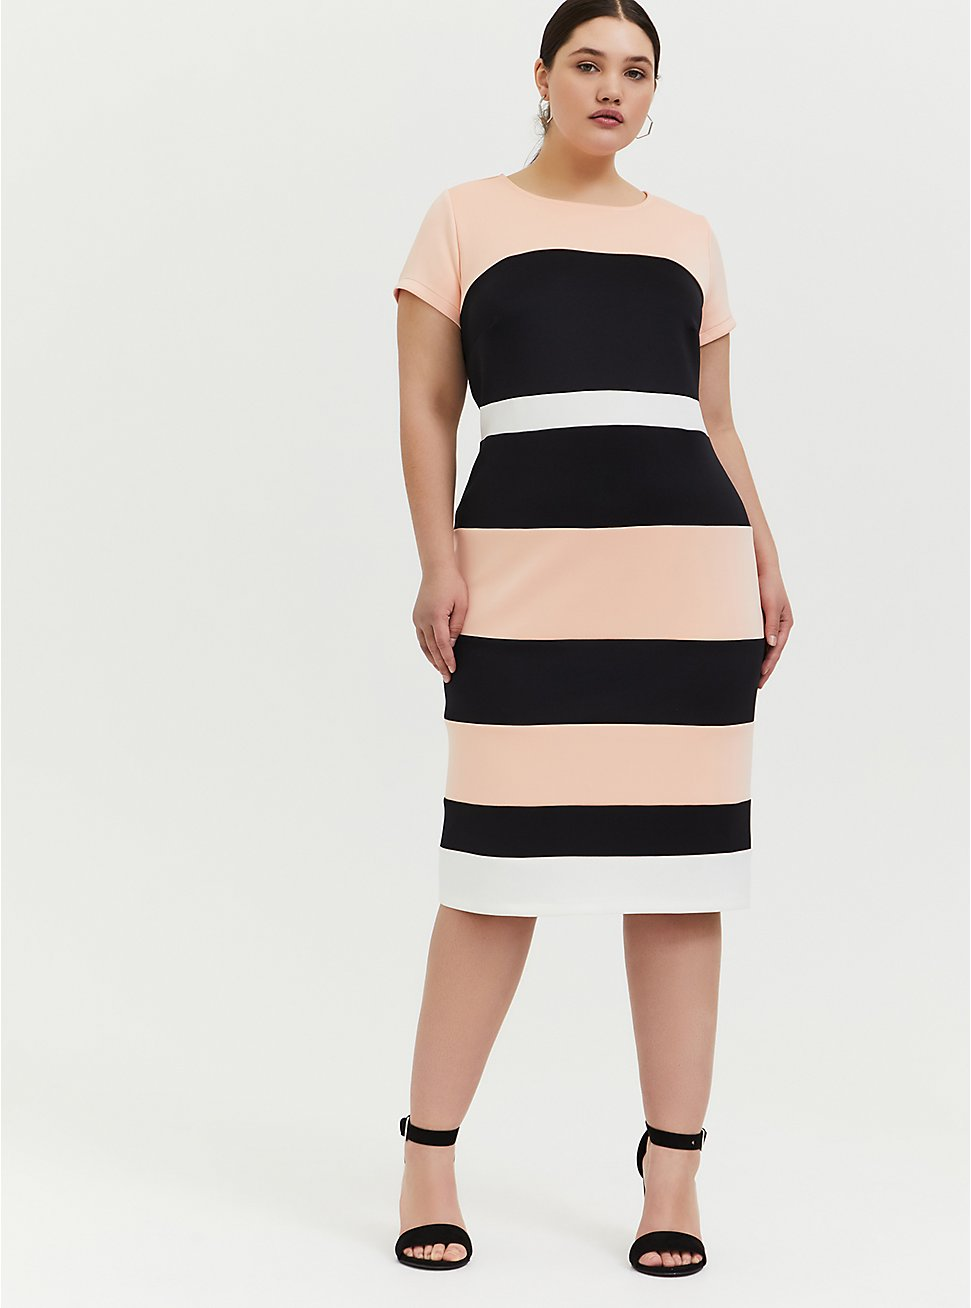 Peach Colorblock Scuba Knit Sheath Dress, , hi-res